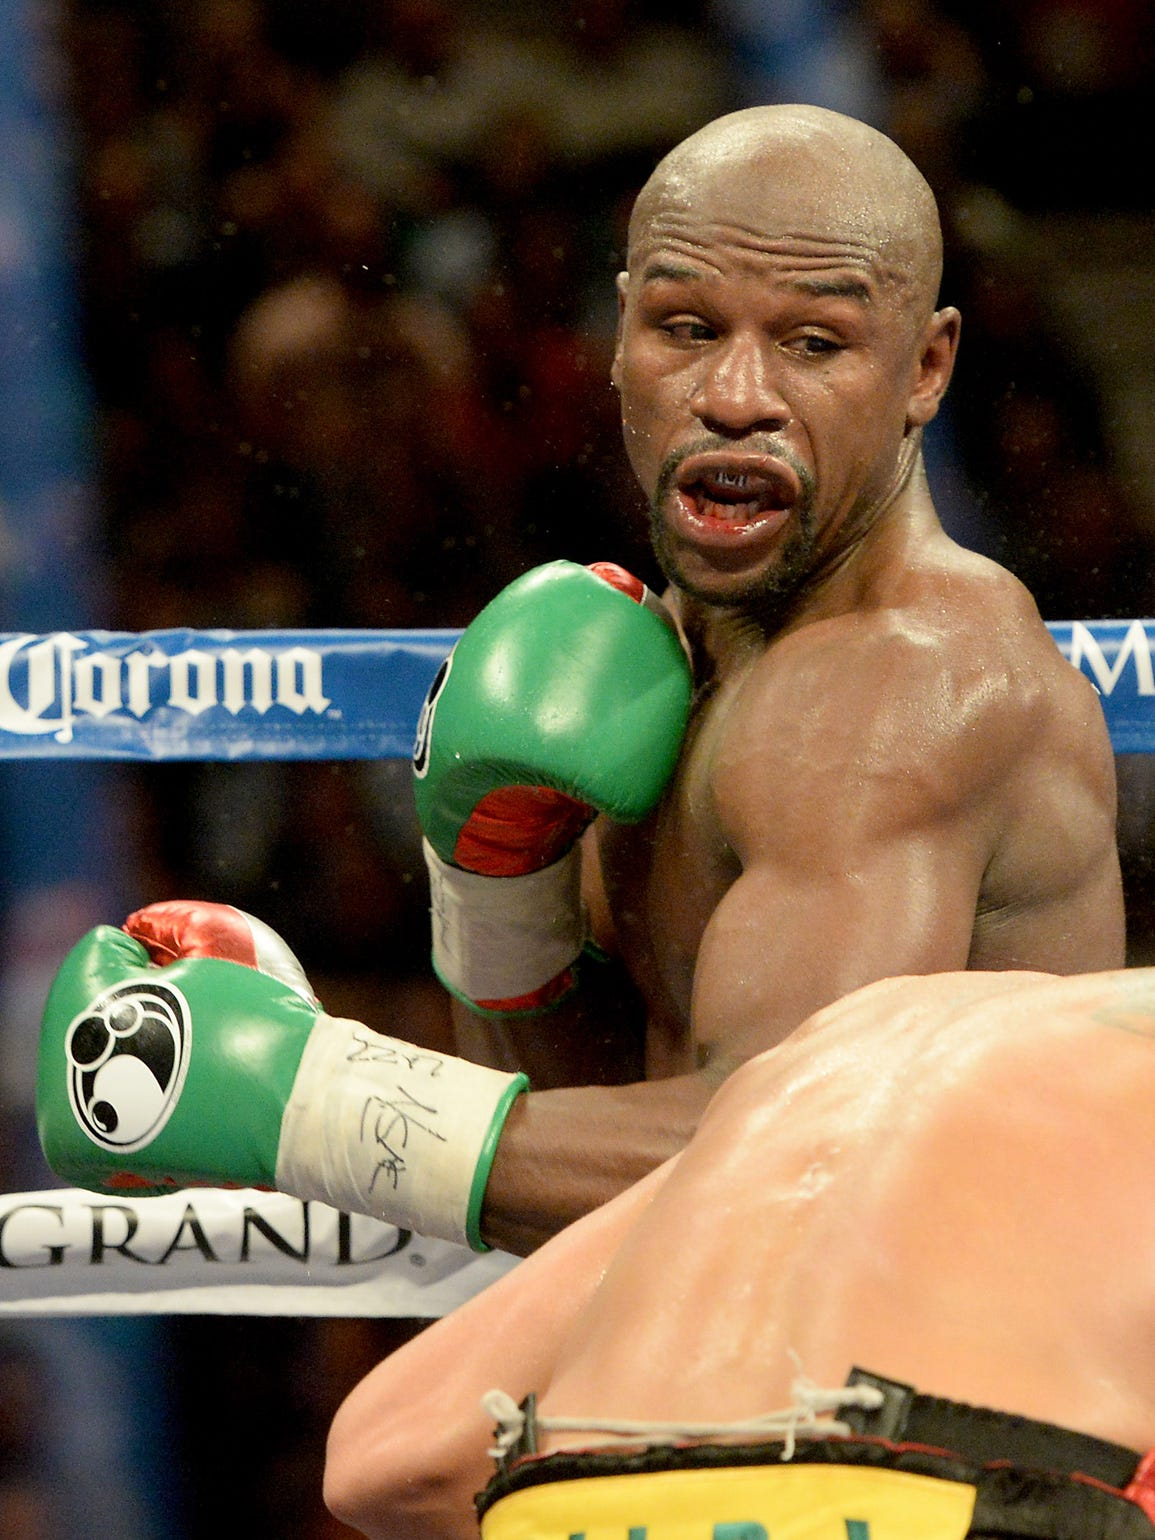 floyd mayweather In his first ever match, mcgregor survived nine rounds against mayweather but visibly tired as the boxing expert's nous started to tell.